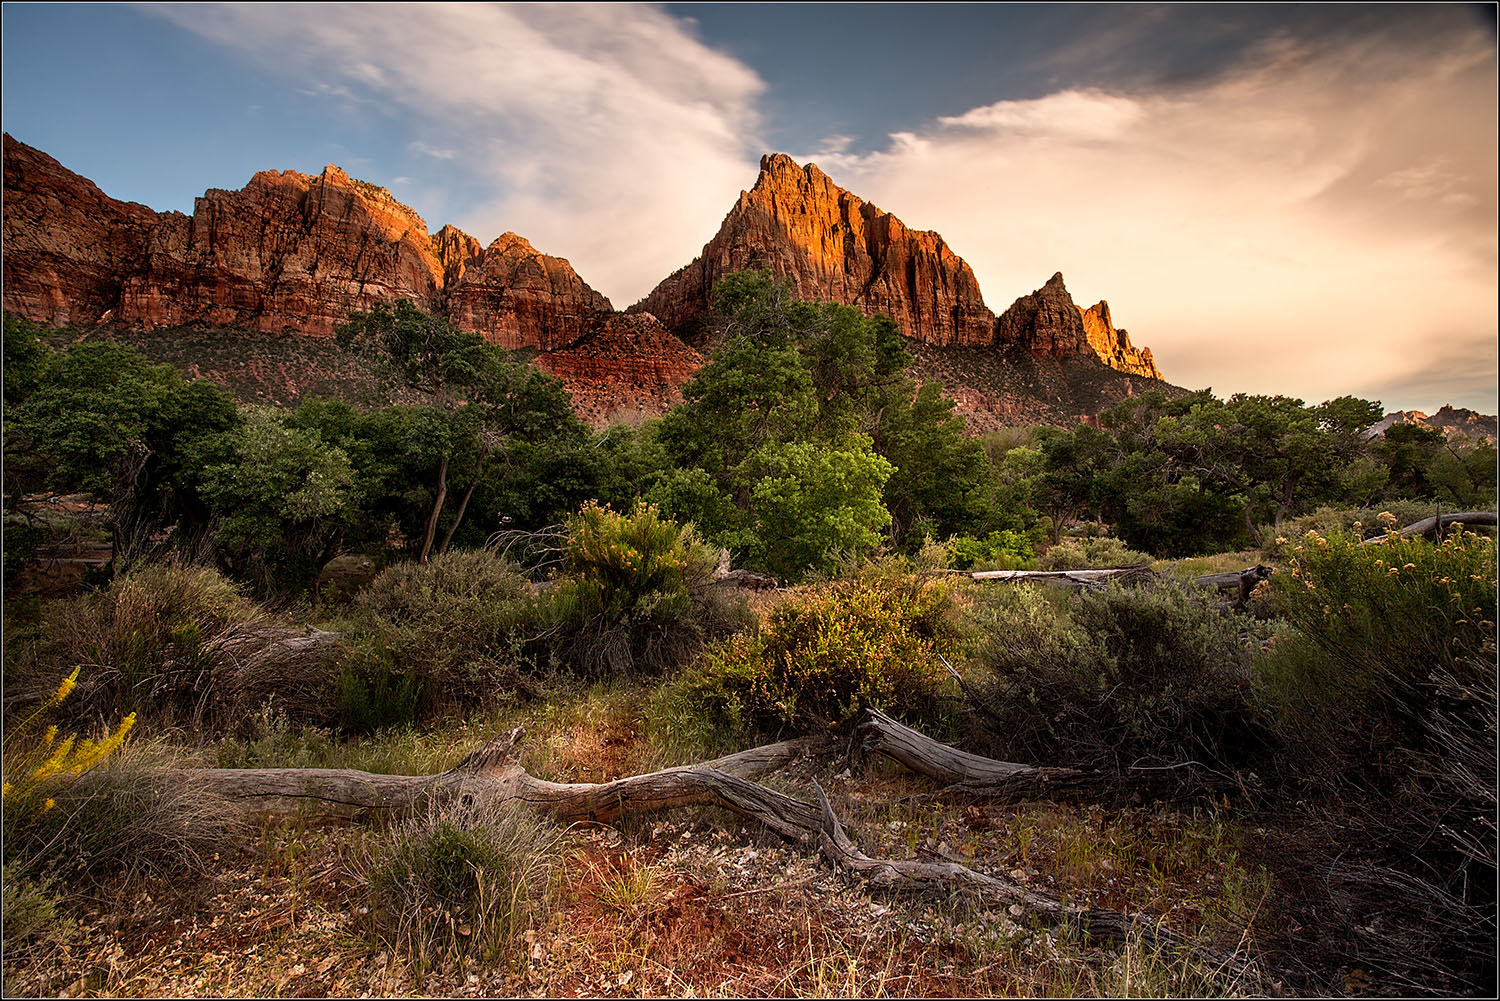 Photograph Sunset in Zion by Brian Clark on 500px